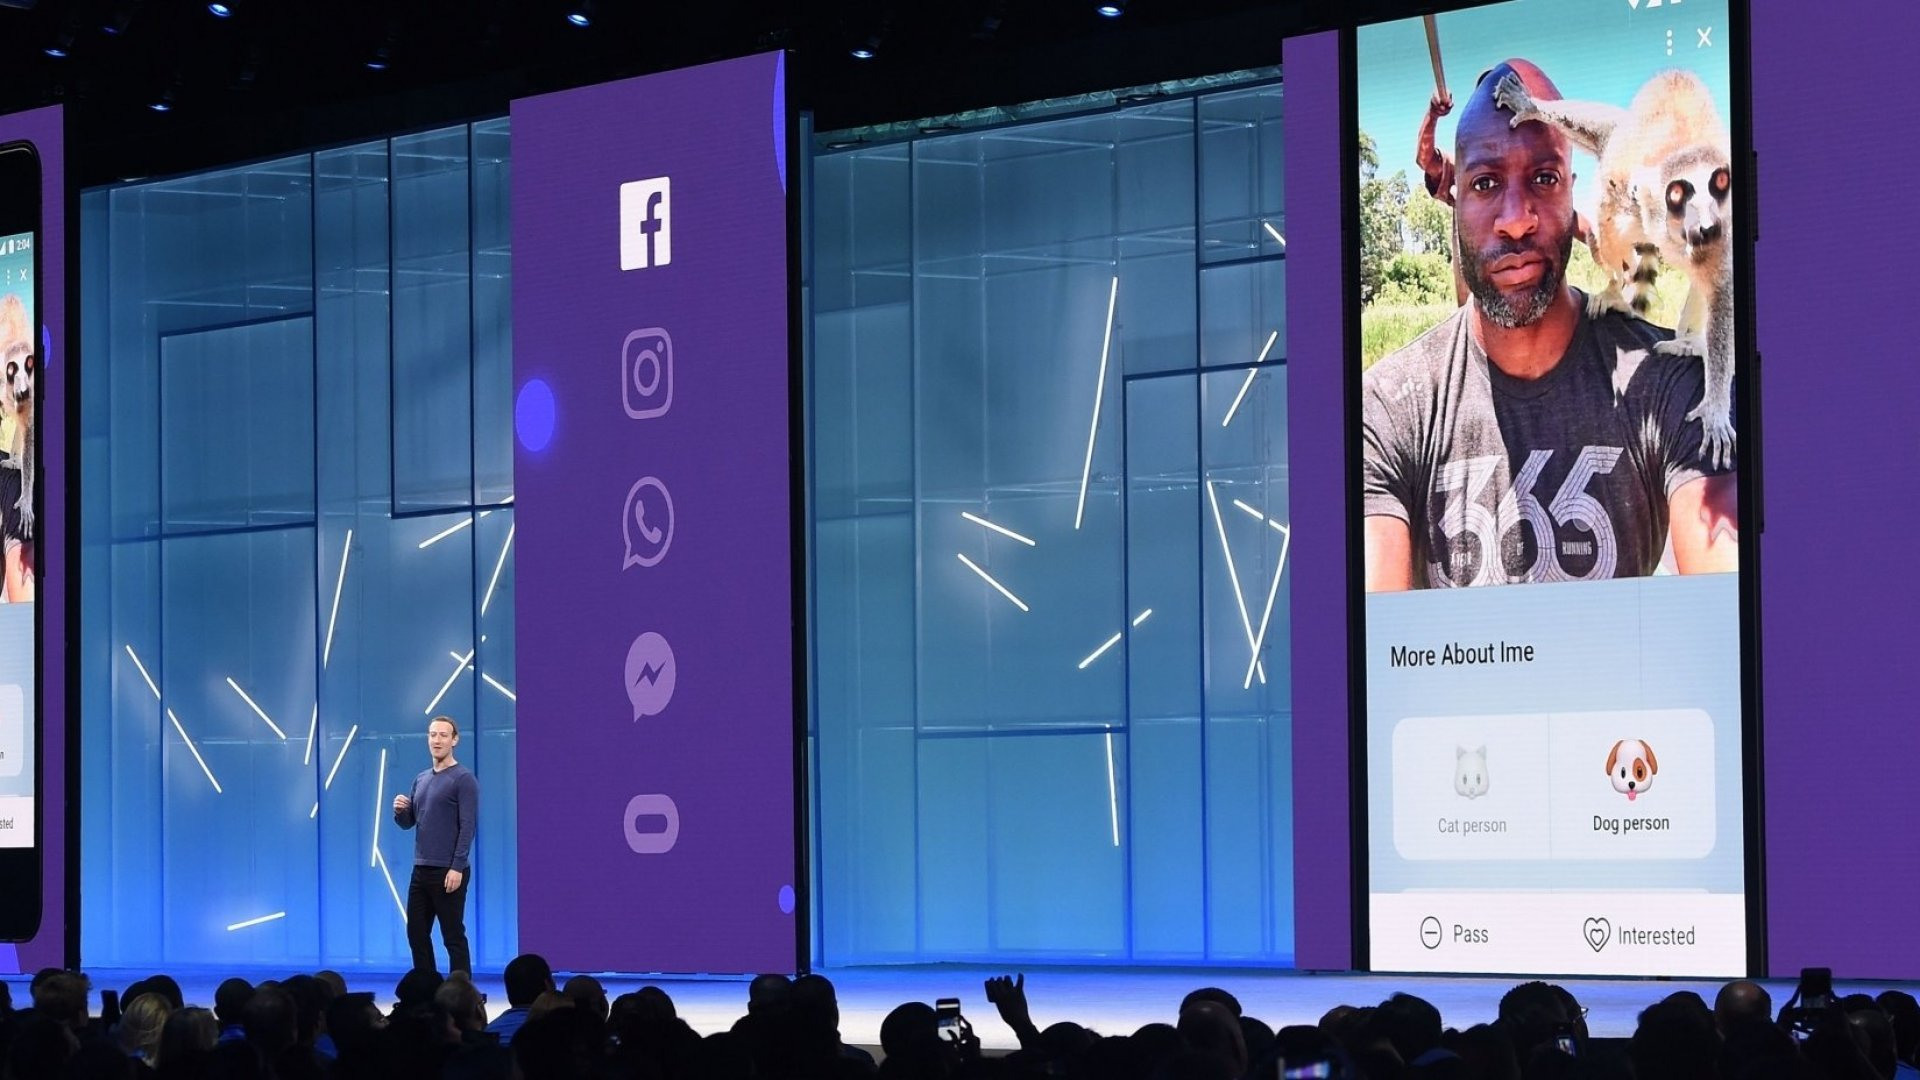 Facebook Just Launched What Might BeIts Most Useful Product Ever (Even if It Is a Little Creepy)